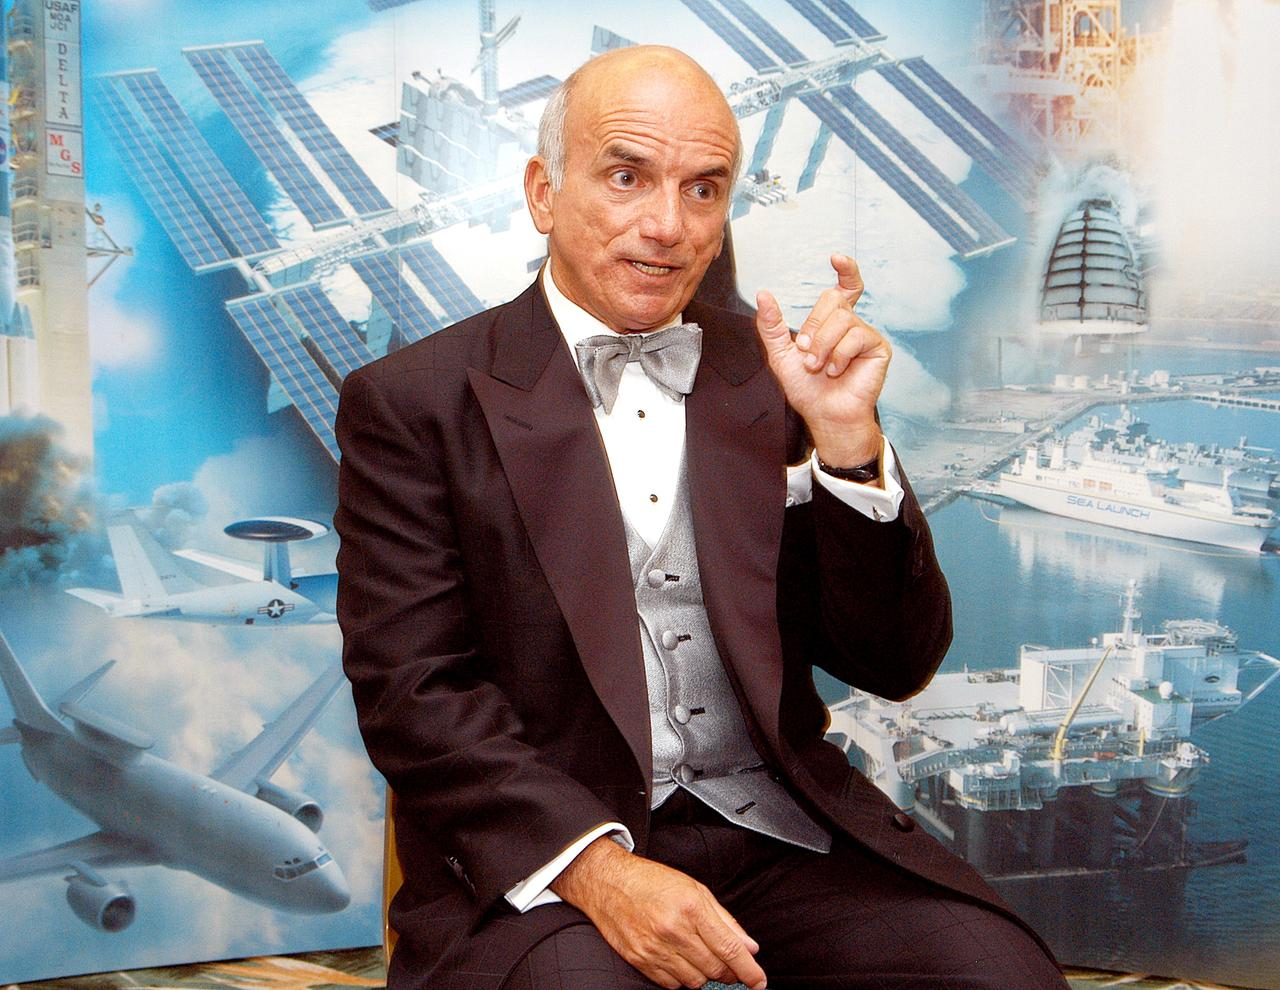 Dennis Tito, the first private citizen to visit the International Space Station, shares his experiences at the 40th Space CongressNASA photo KSC-03pd1489 (30 April 2003) KSC-03pd1489~medium.jpg